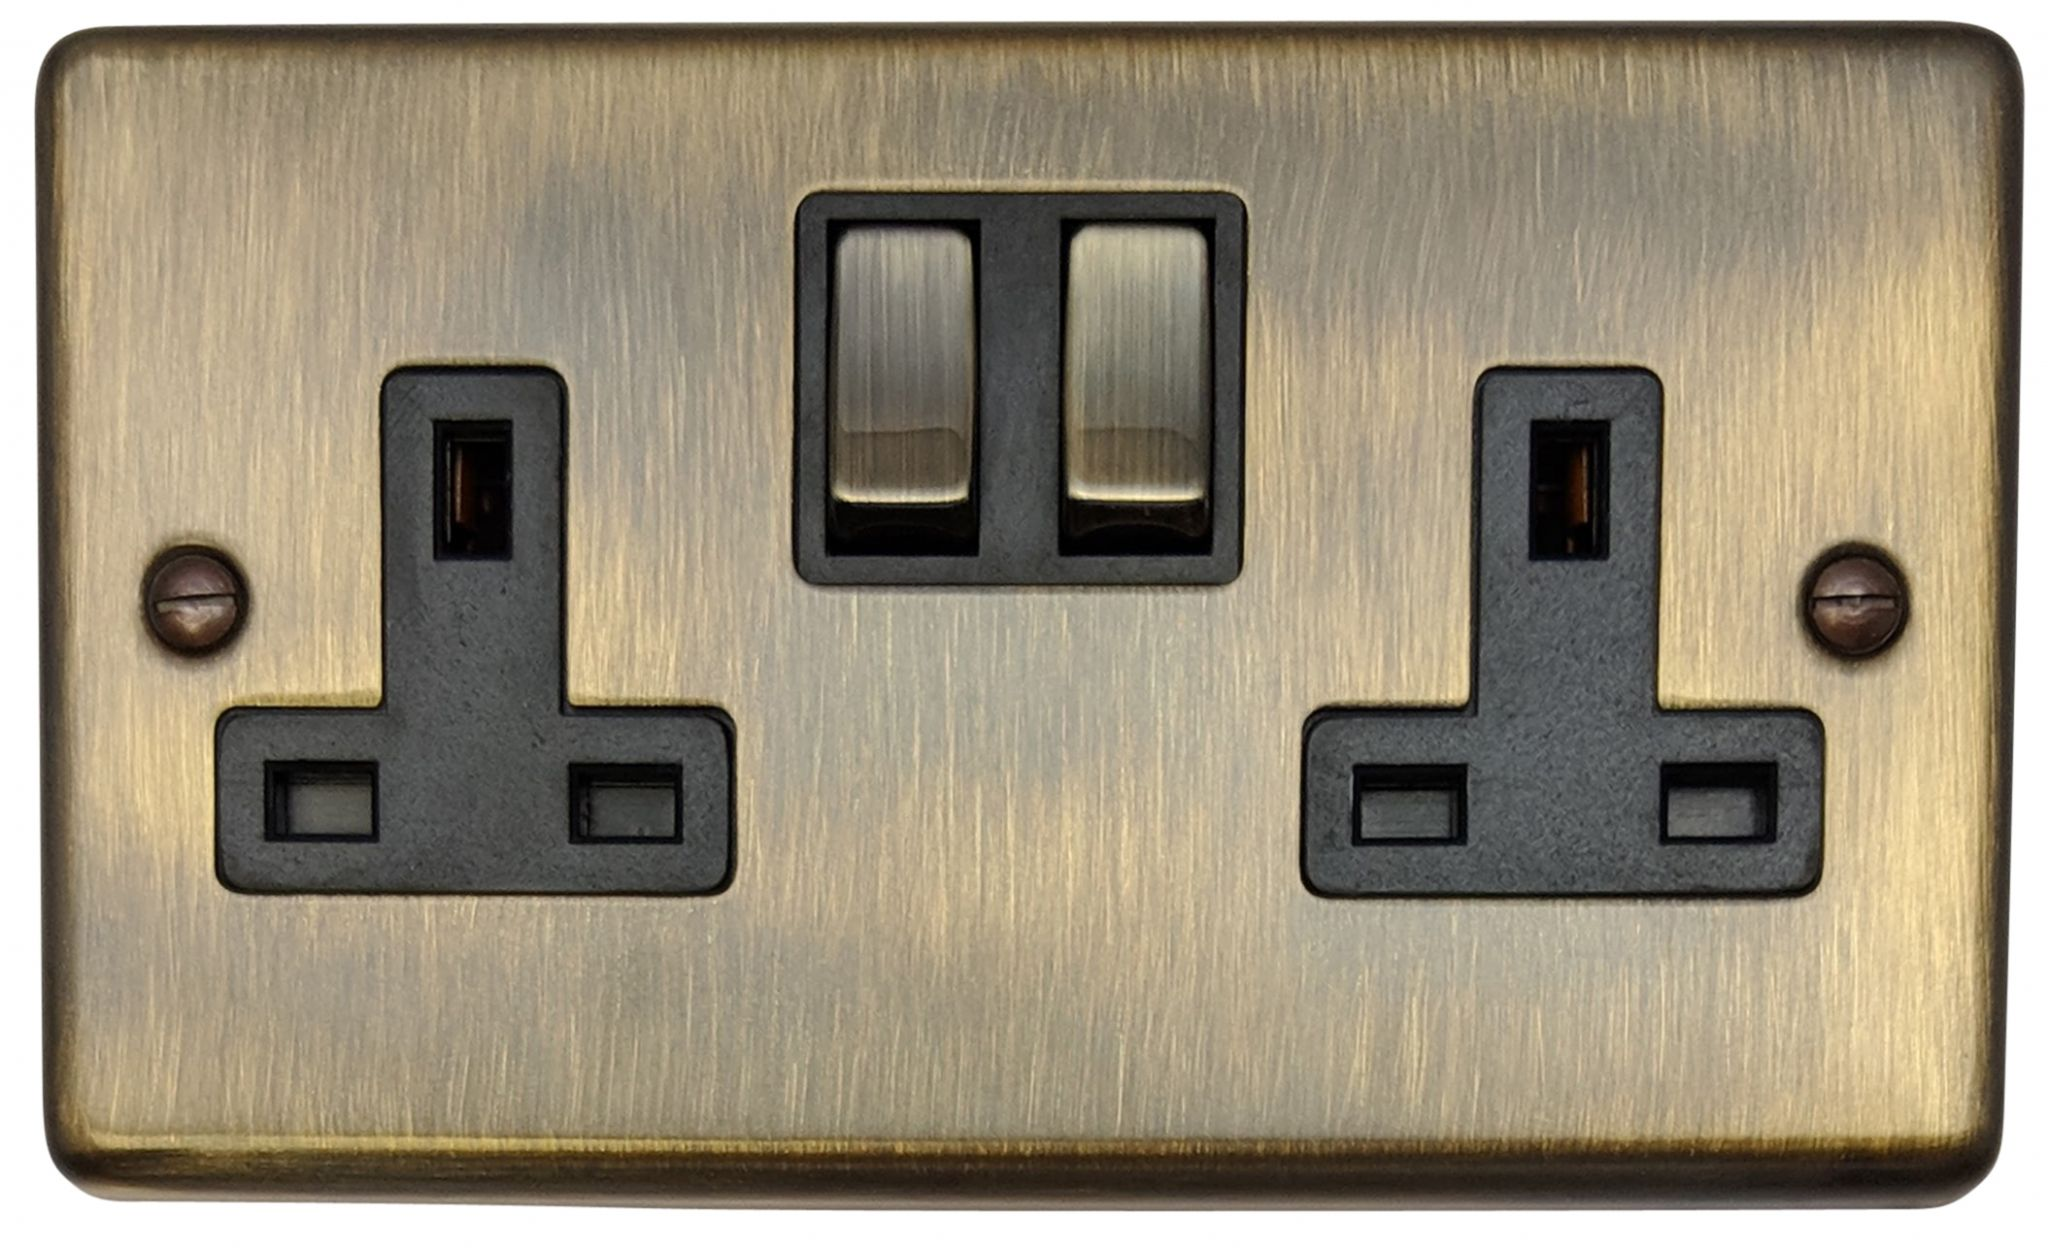 g h cab310 standard plate antique bronze 2 gang double 13a switched plug socket